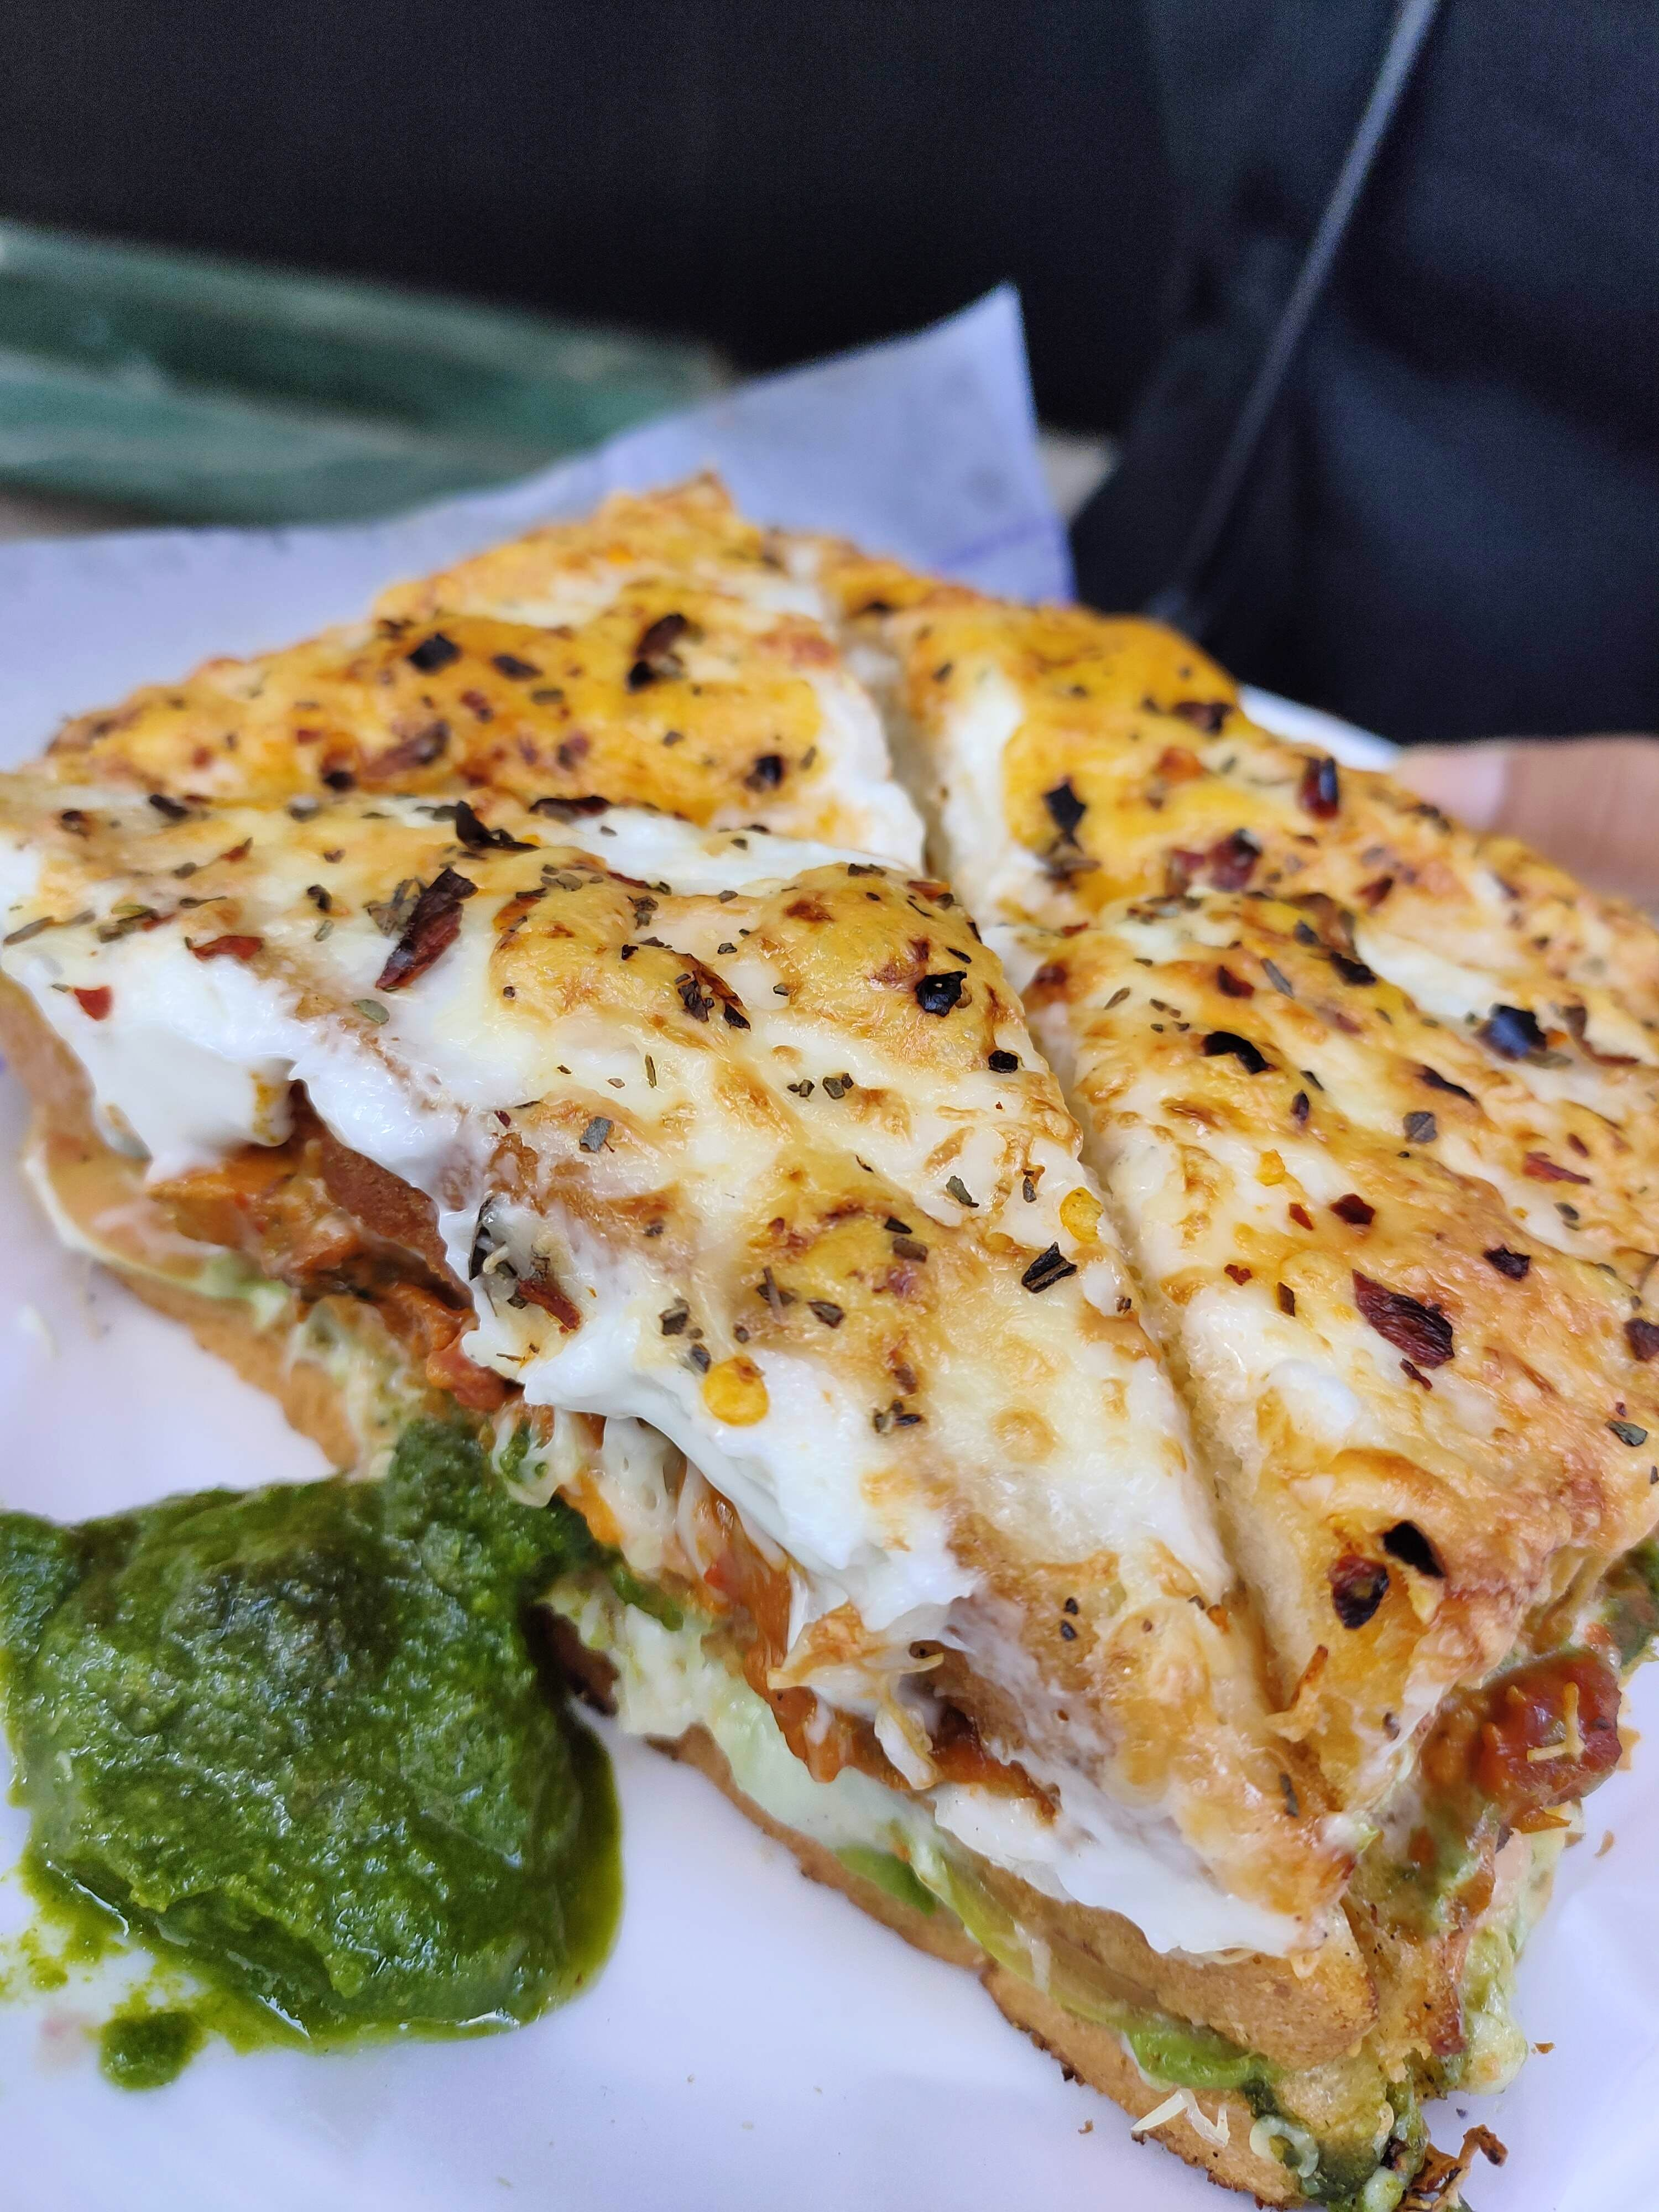 Visit This Cute Little Outlet In Tardeo For Their Yum Sandwiches!